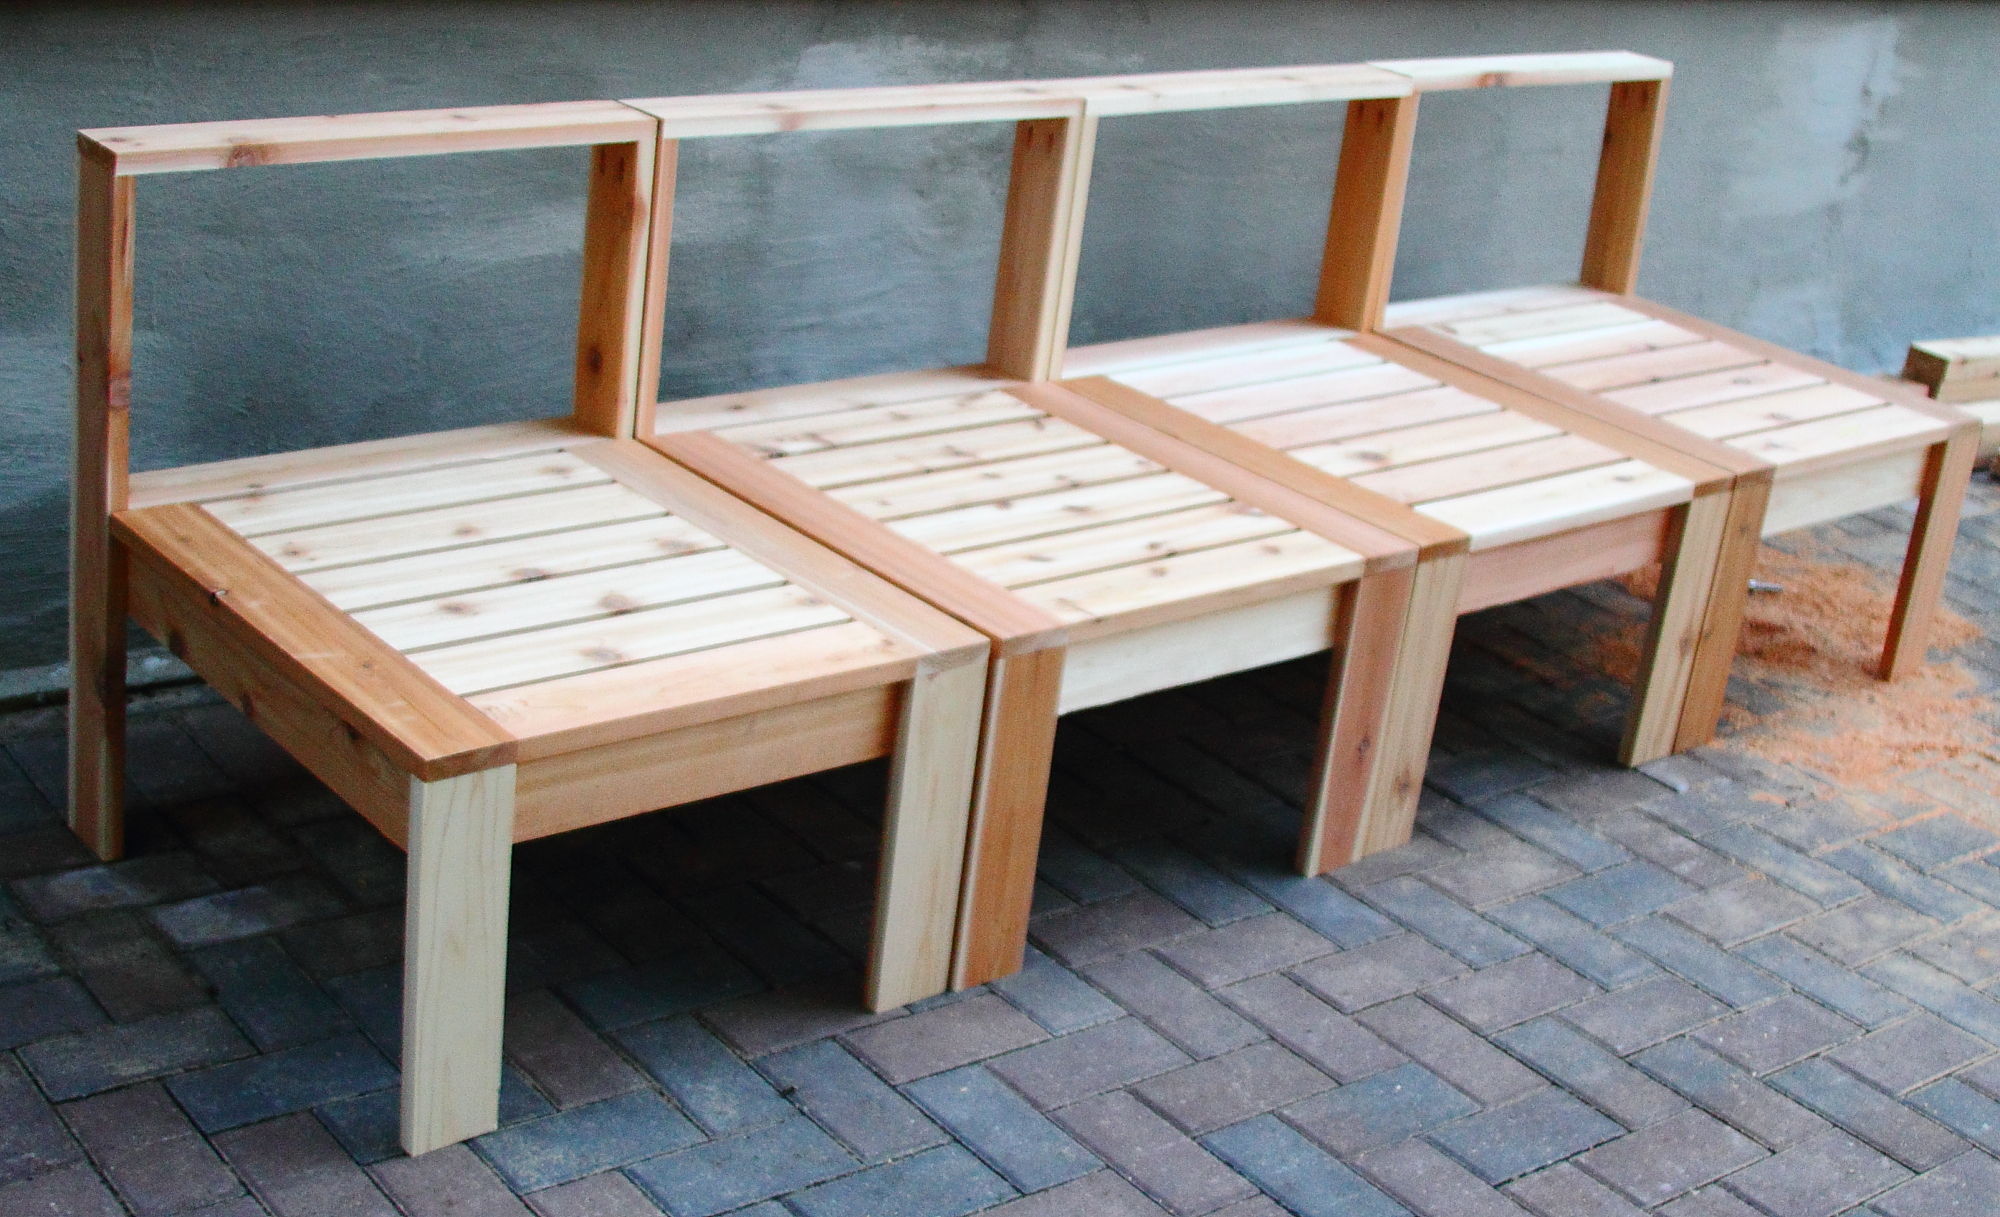 Creative wood bench patio furniture diy projects